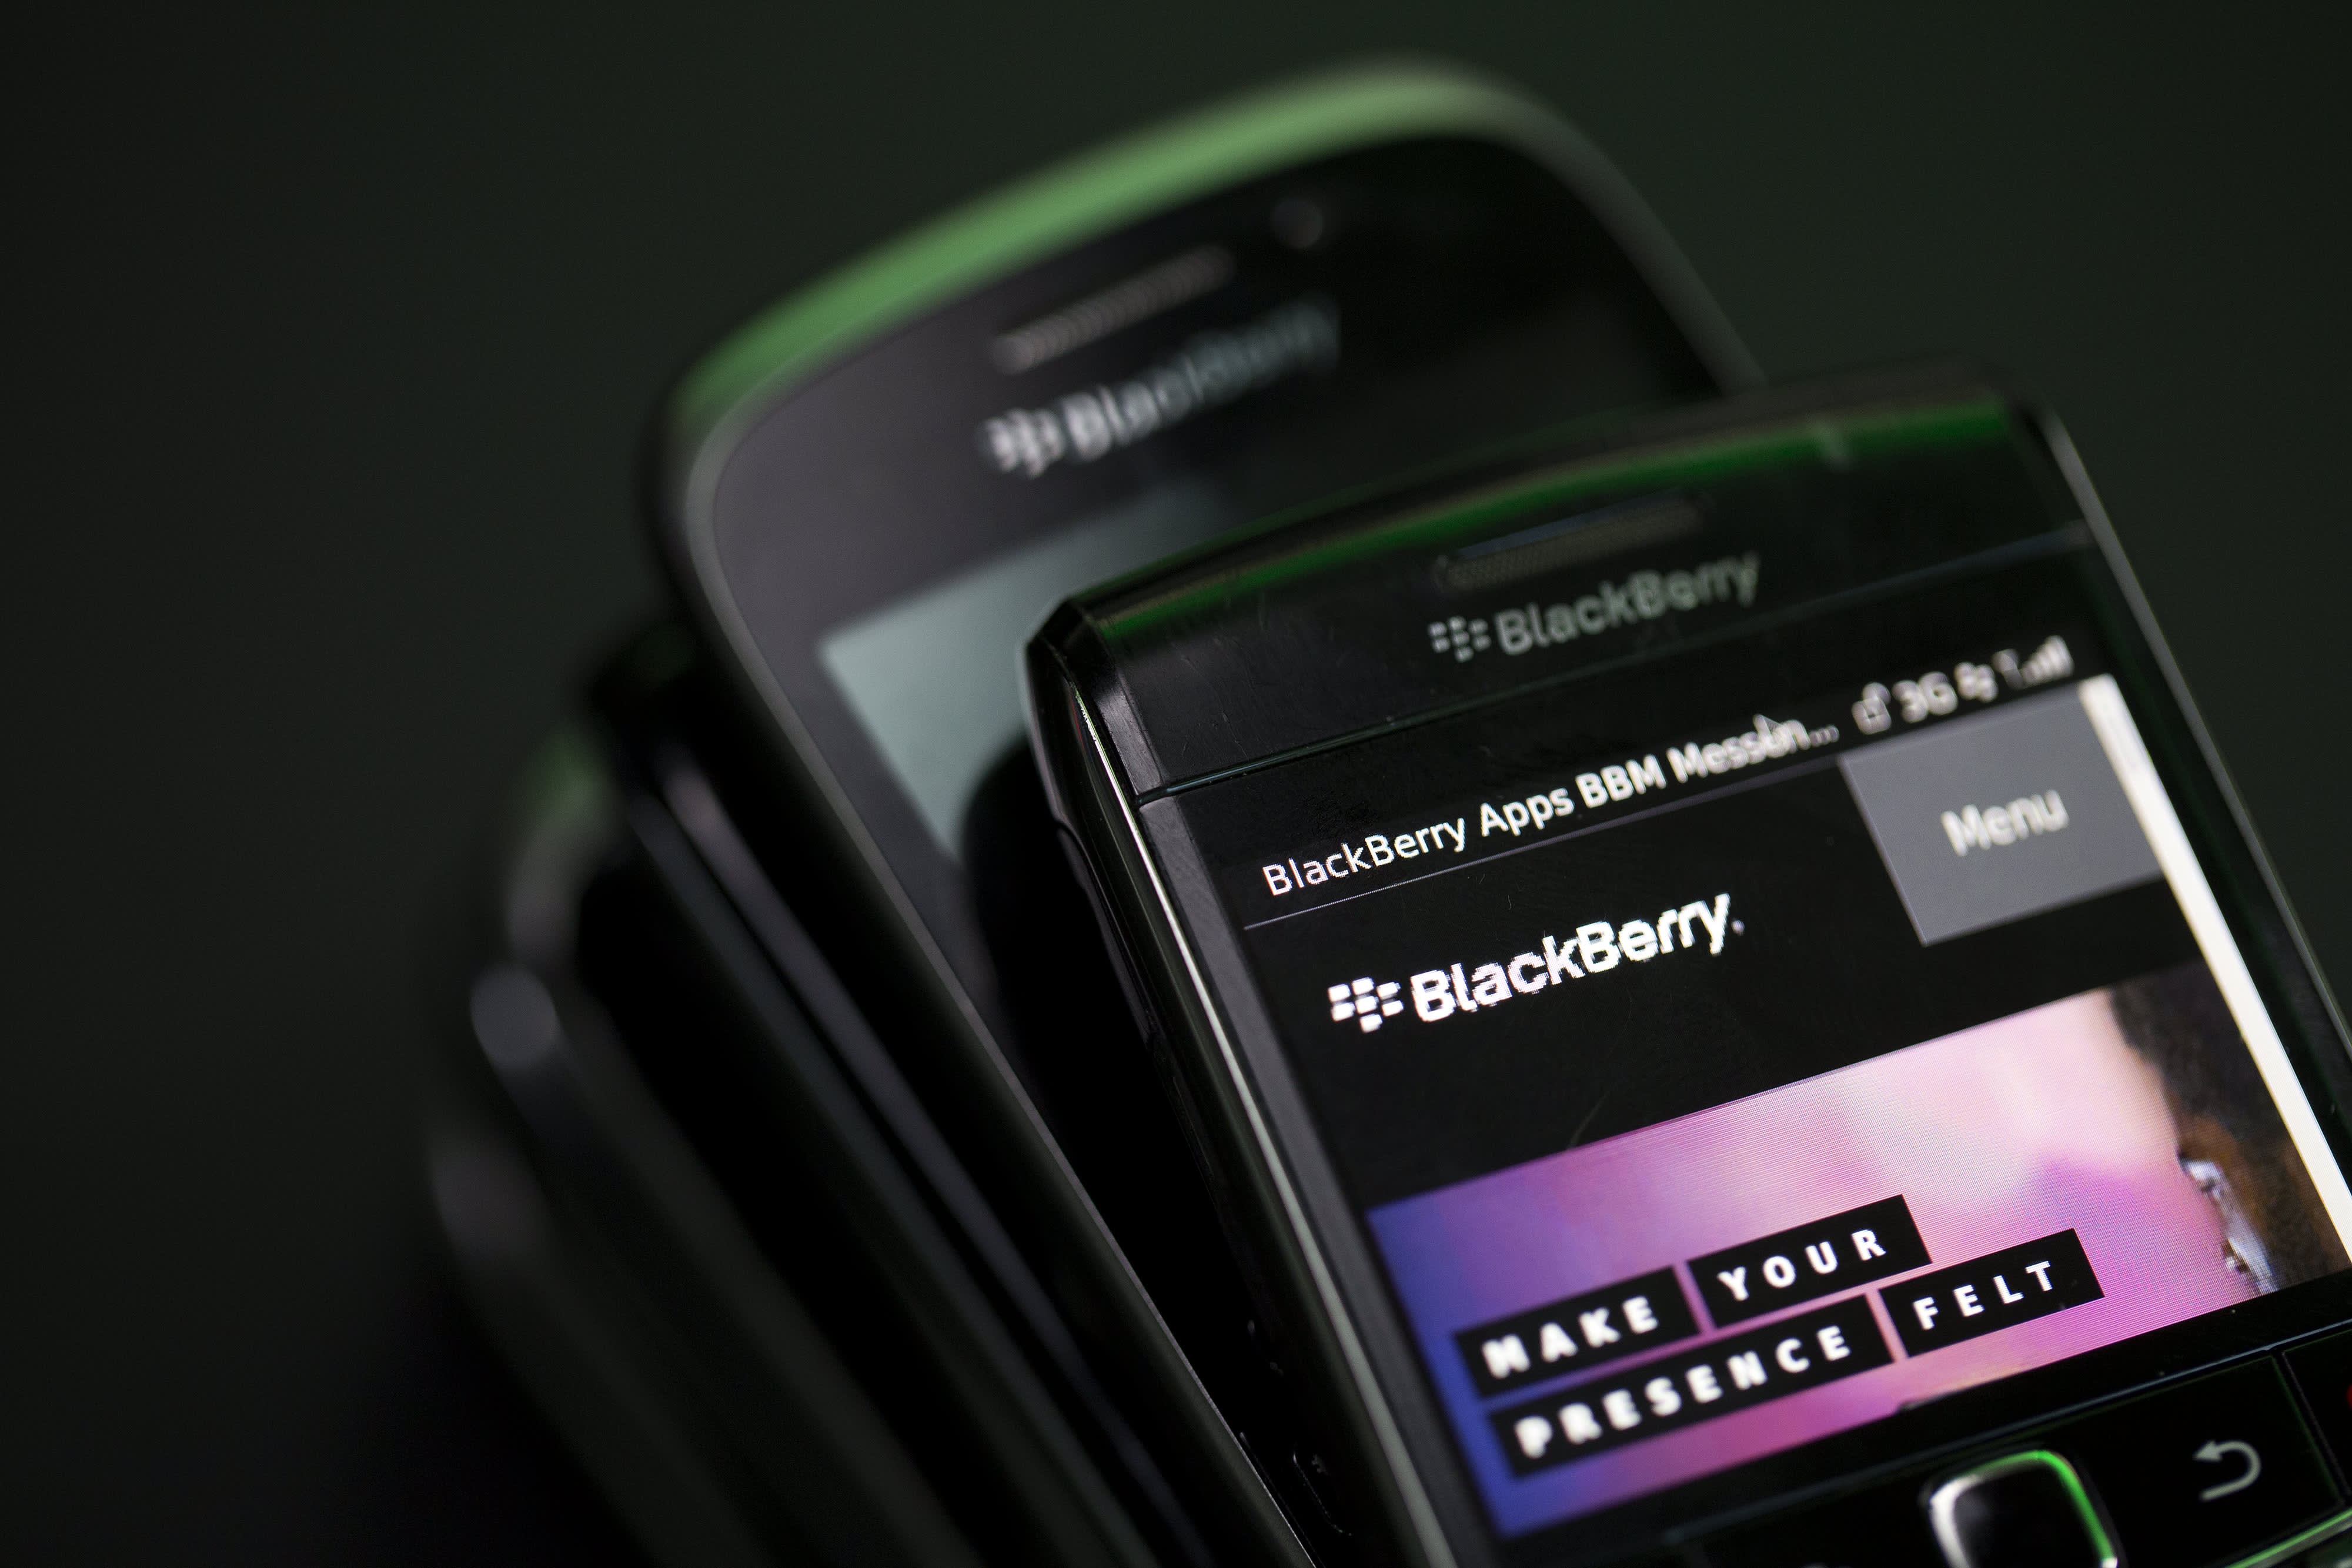 BlackBerry closes chapter on restructuring process